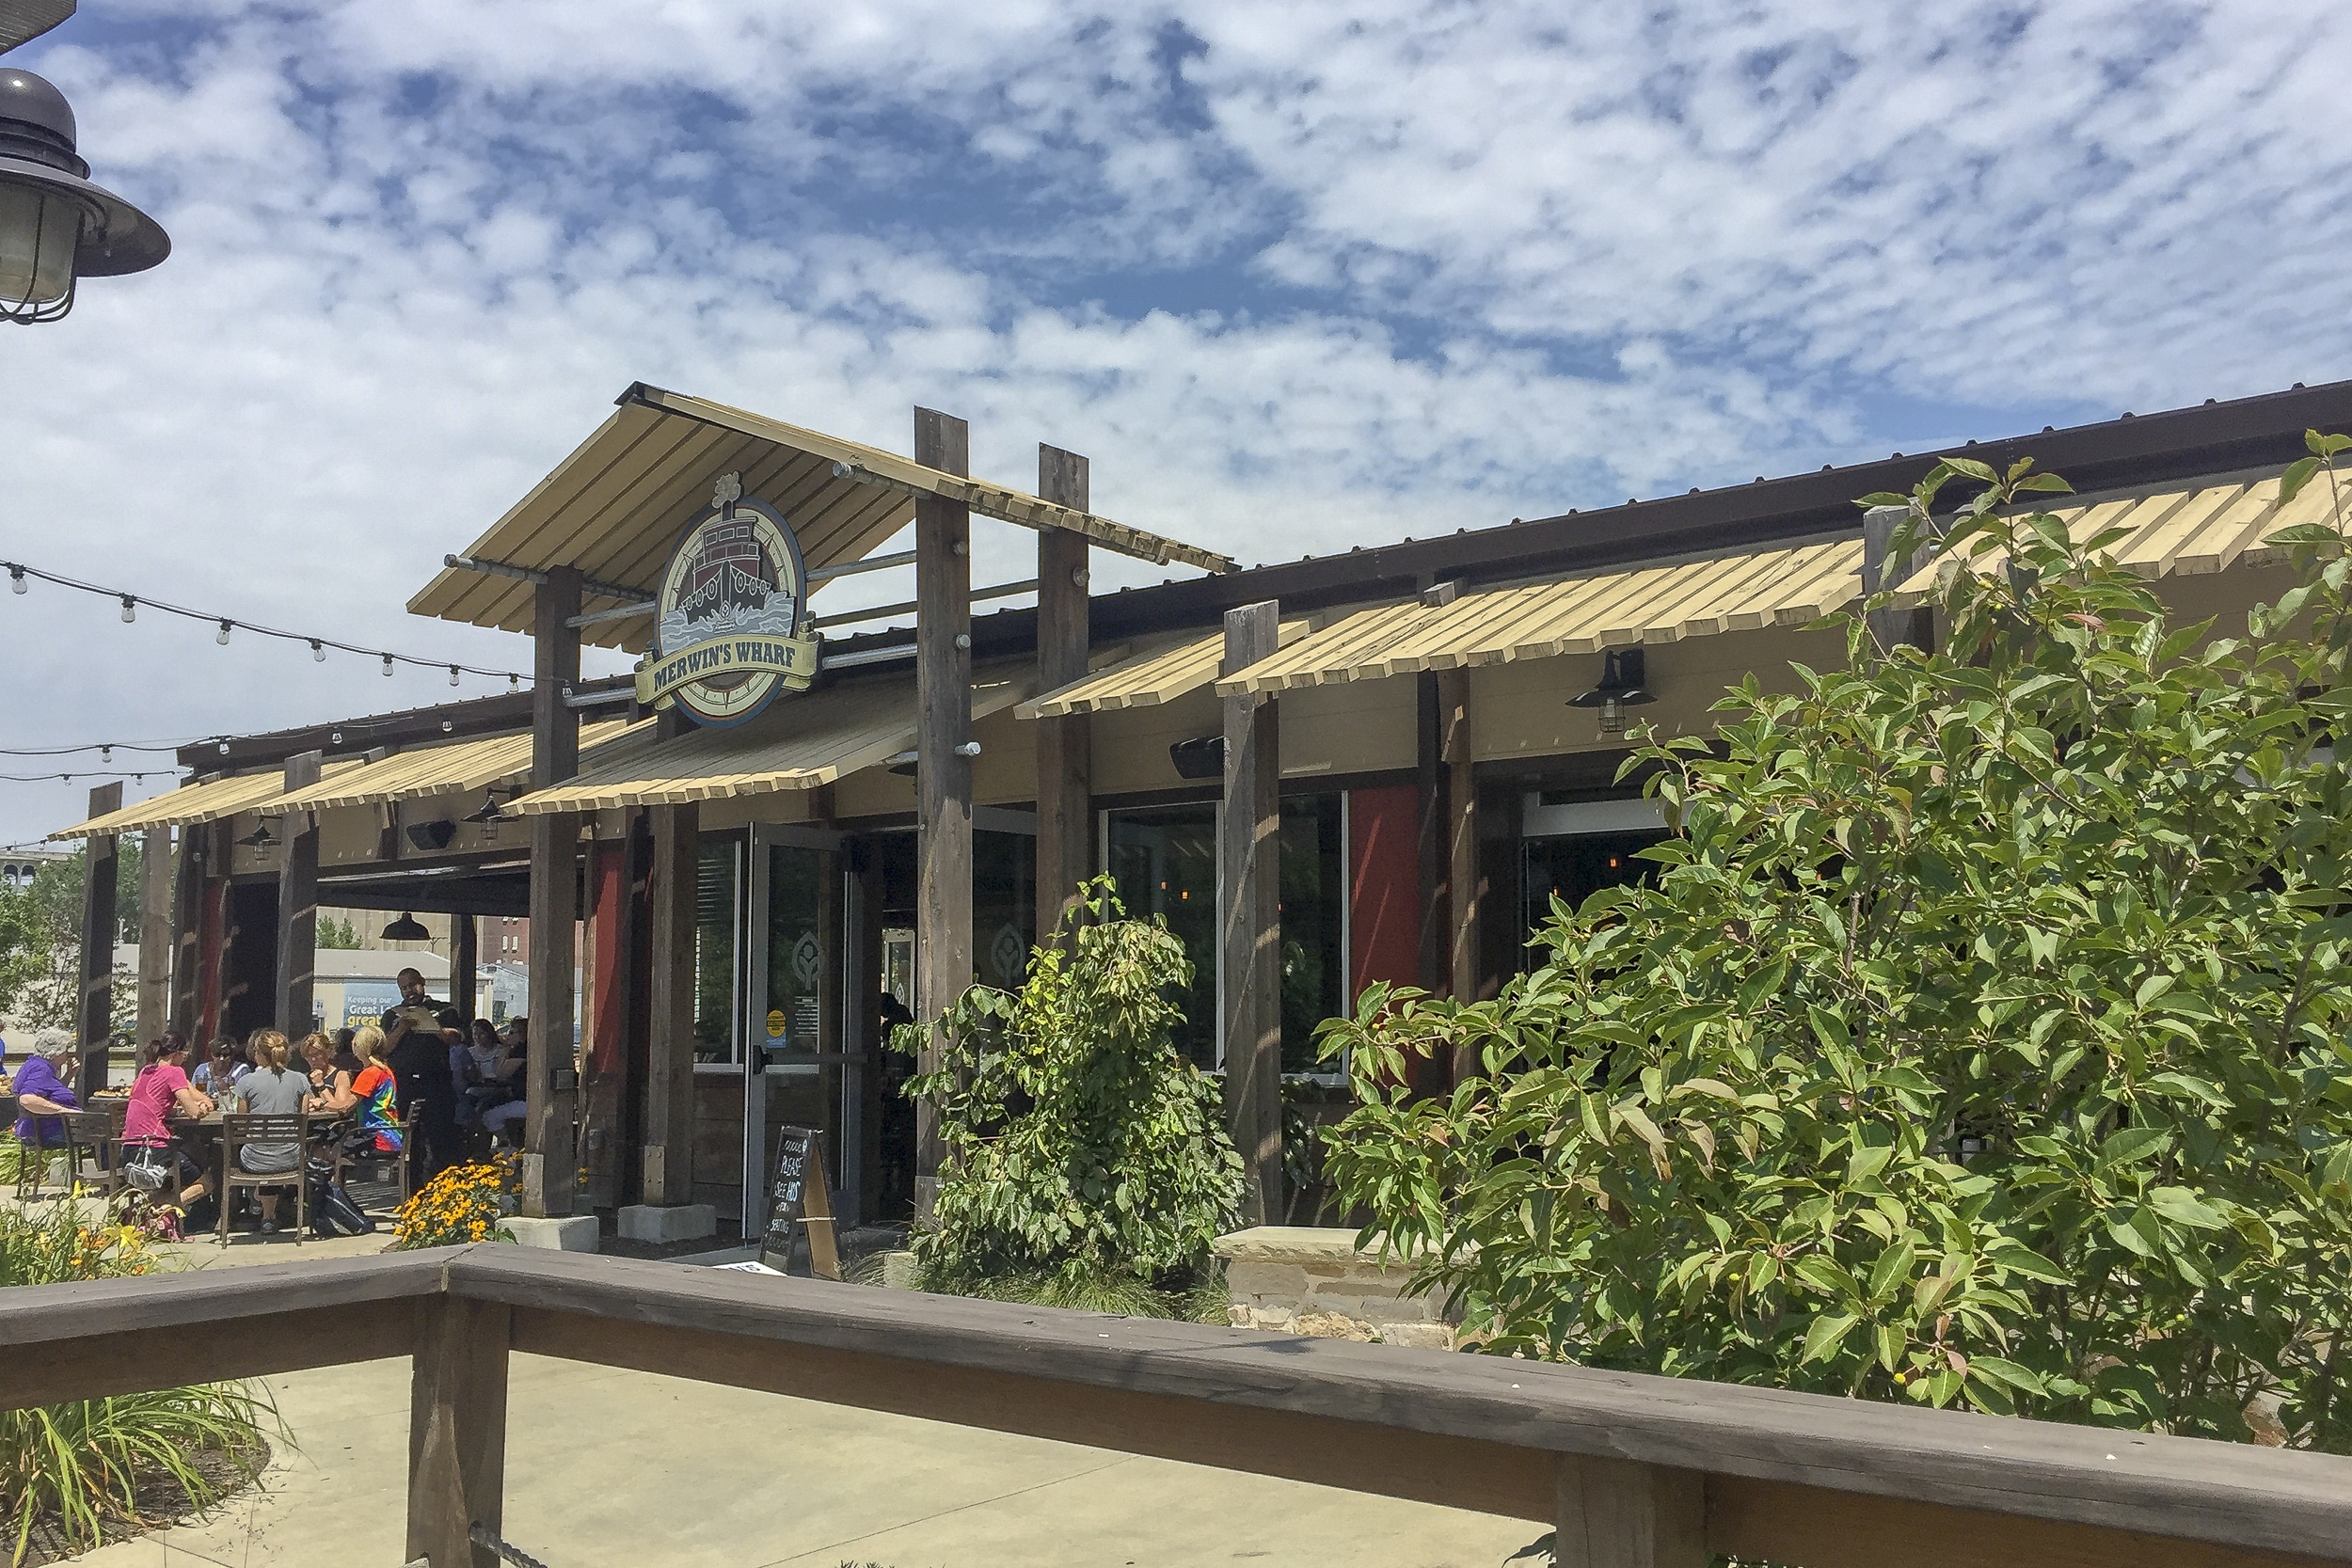 Cleveland Metroparks | Merwin's Wharf - Cleveland, Ohio